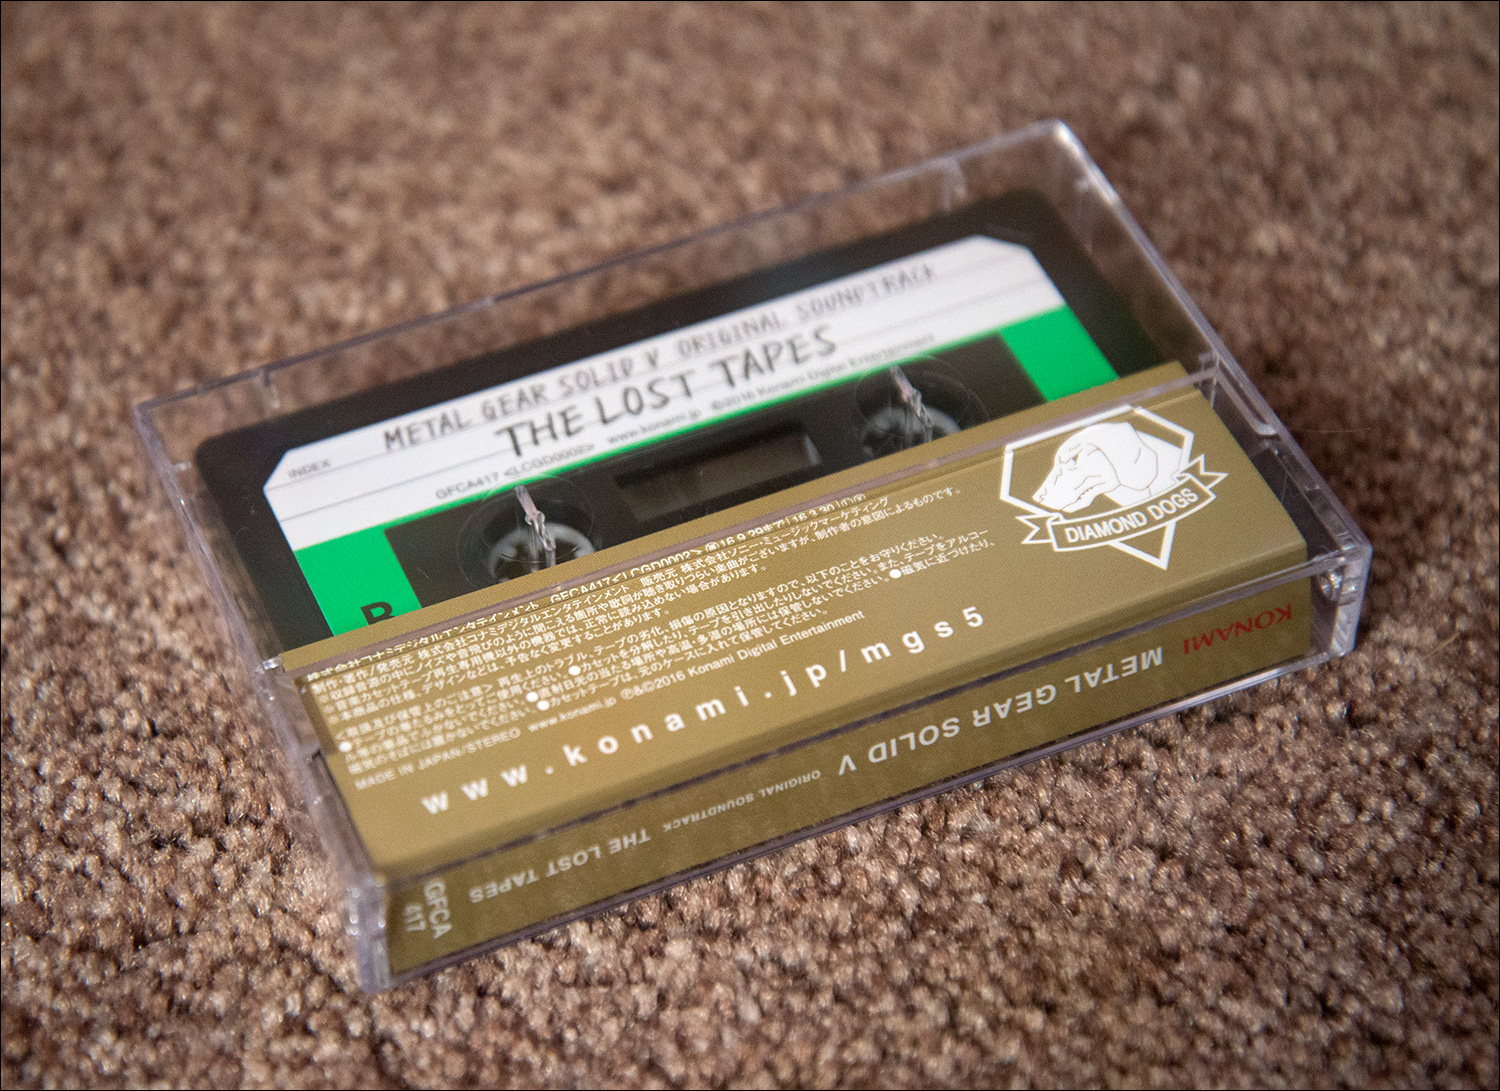 Metal-Gear-Solid-V-The-Lost-Tapes-Cassette-Tape-Case-Back